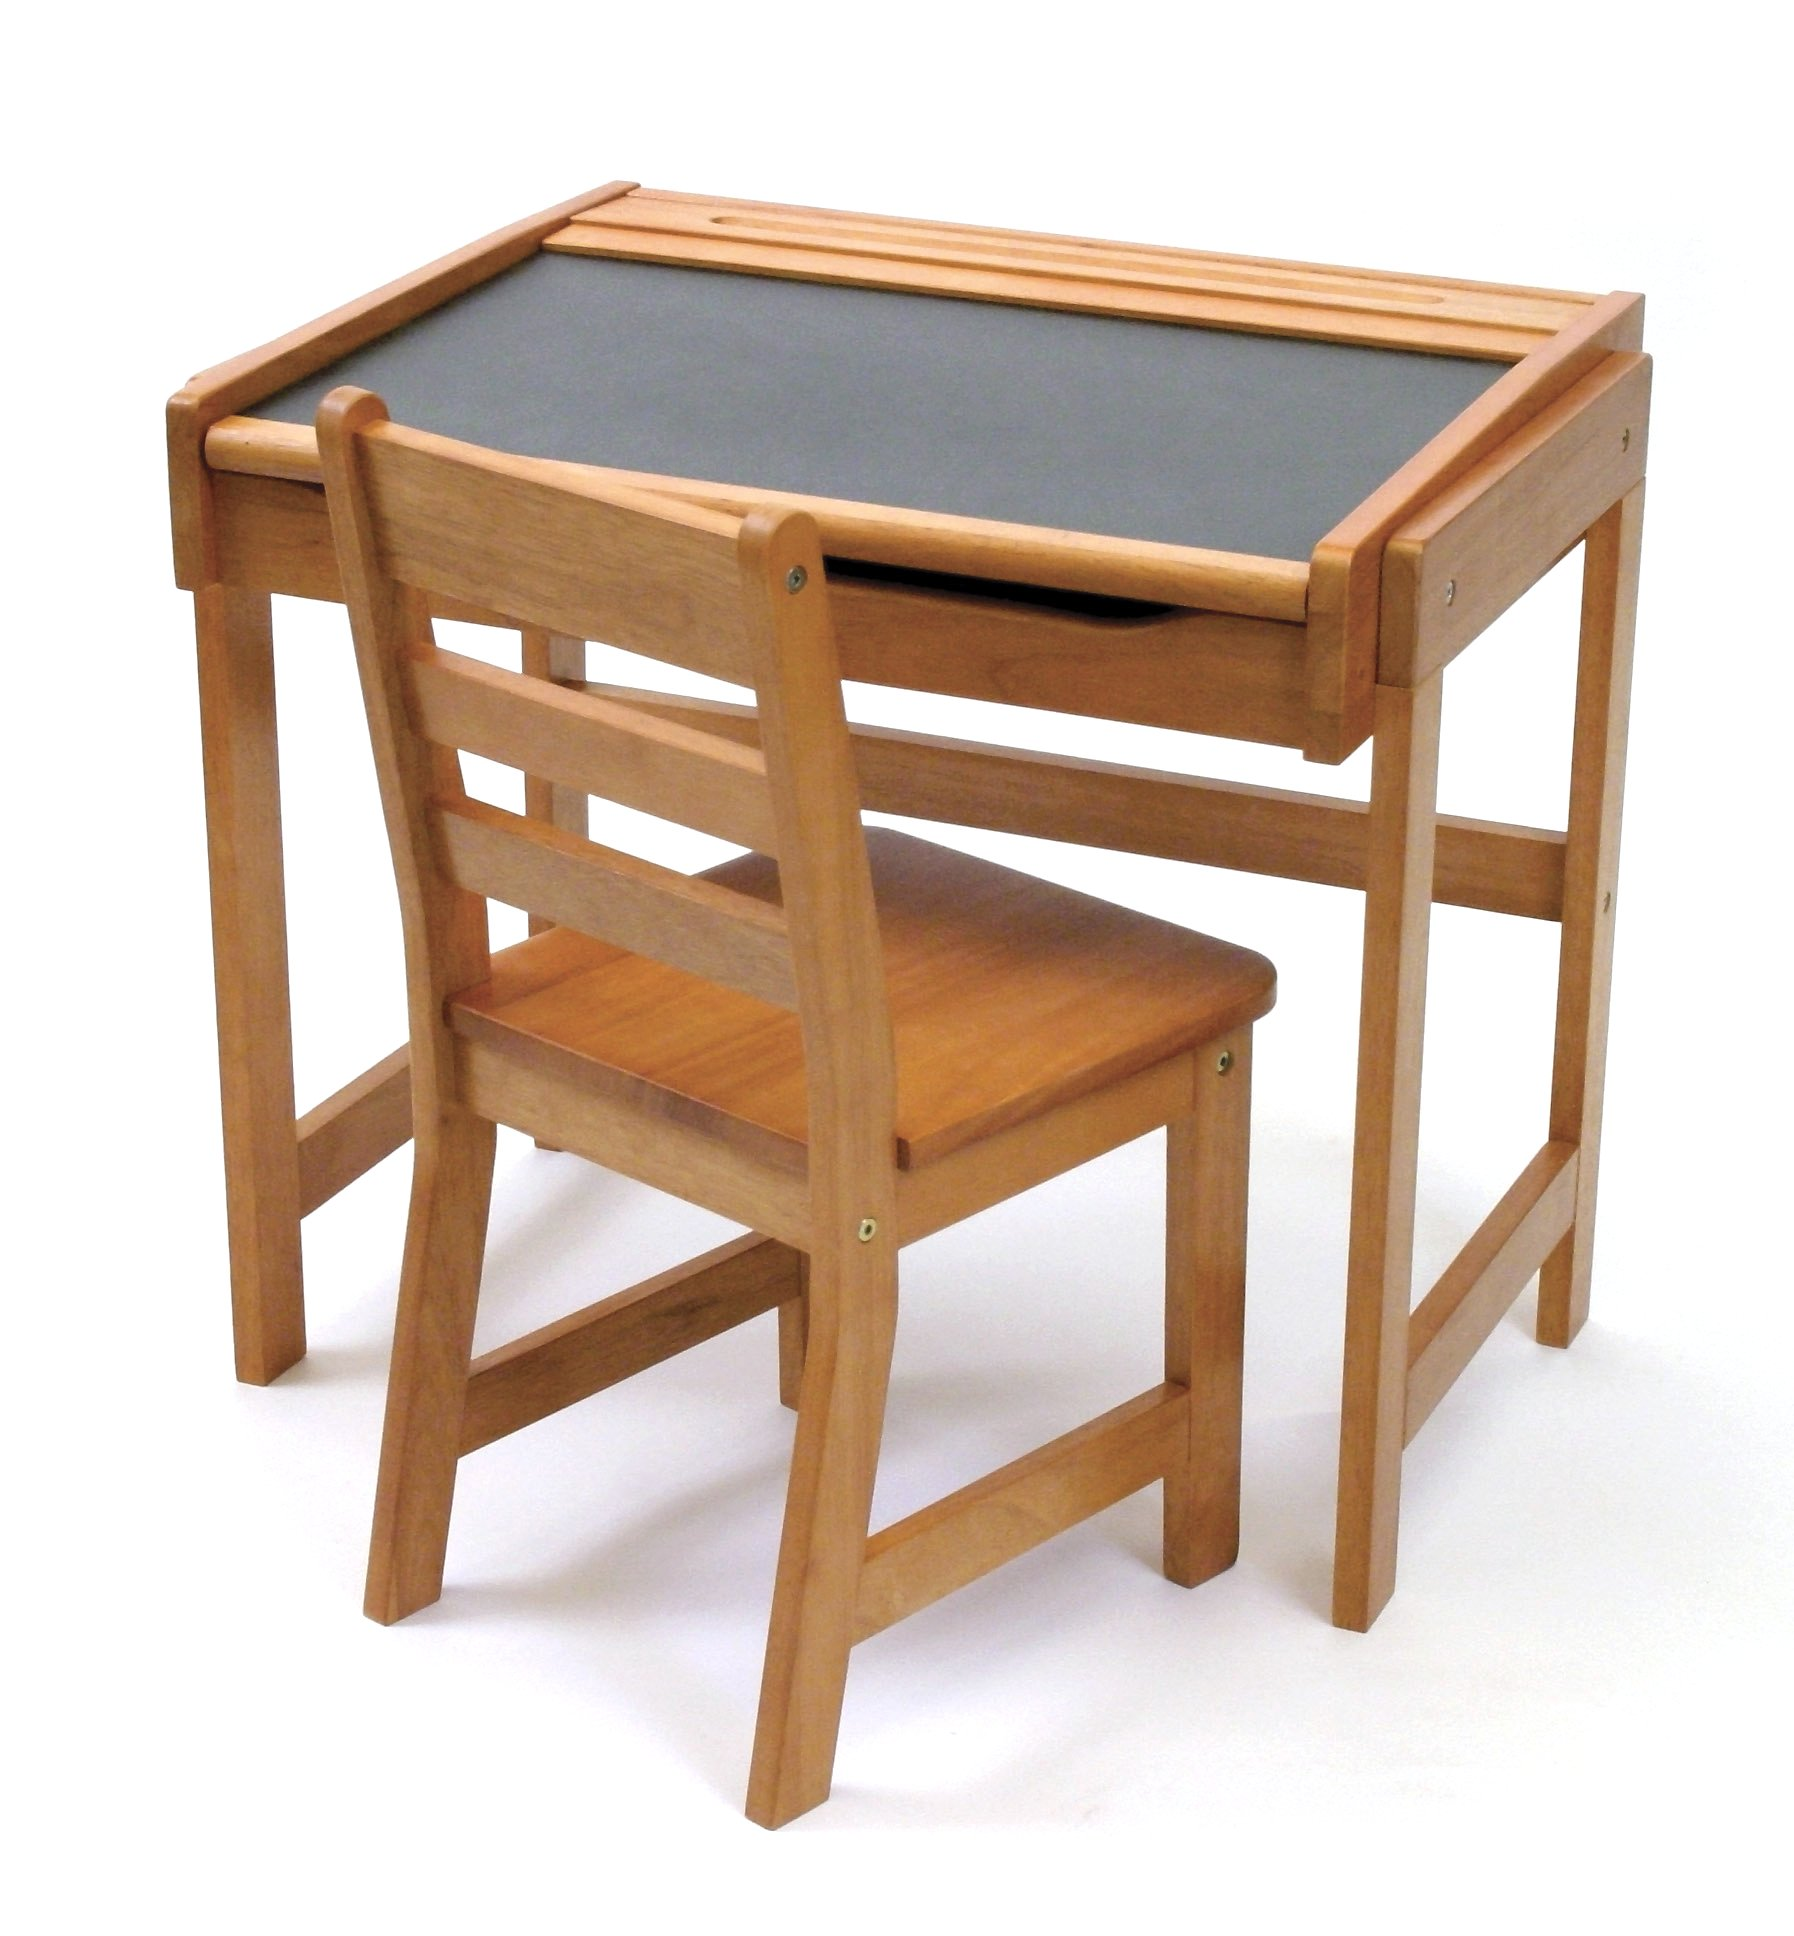 Lipper International 554P Child's Chalkboard Desk and Chair, 2-Piece Set, Pecan Finish